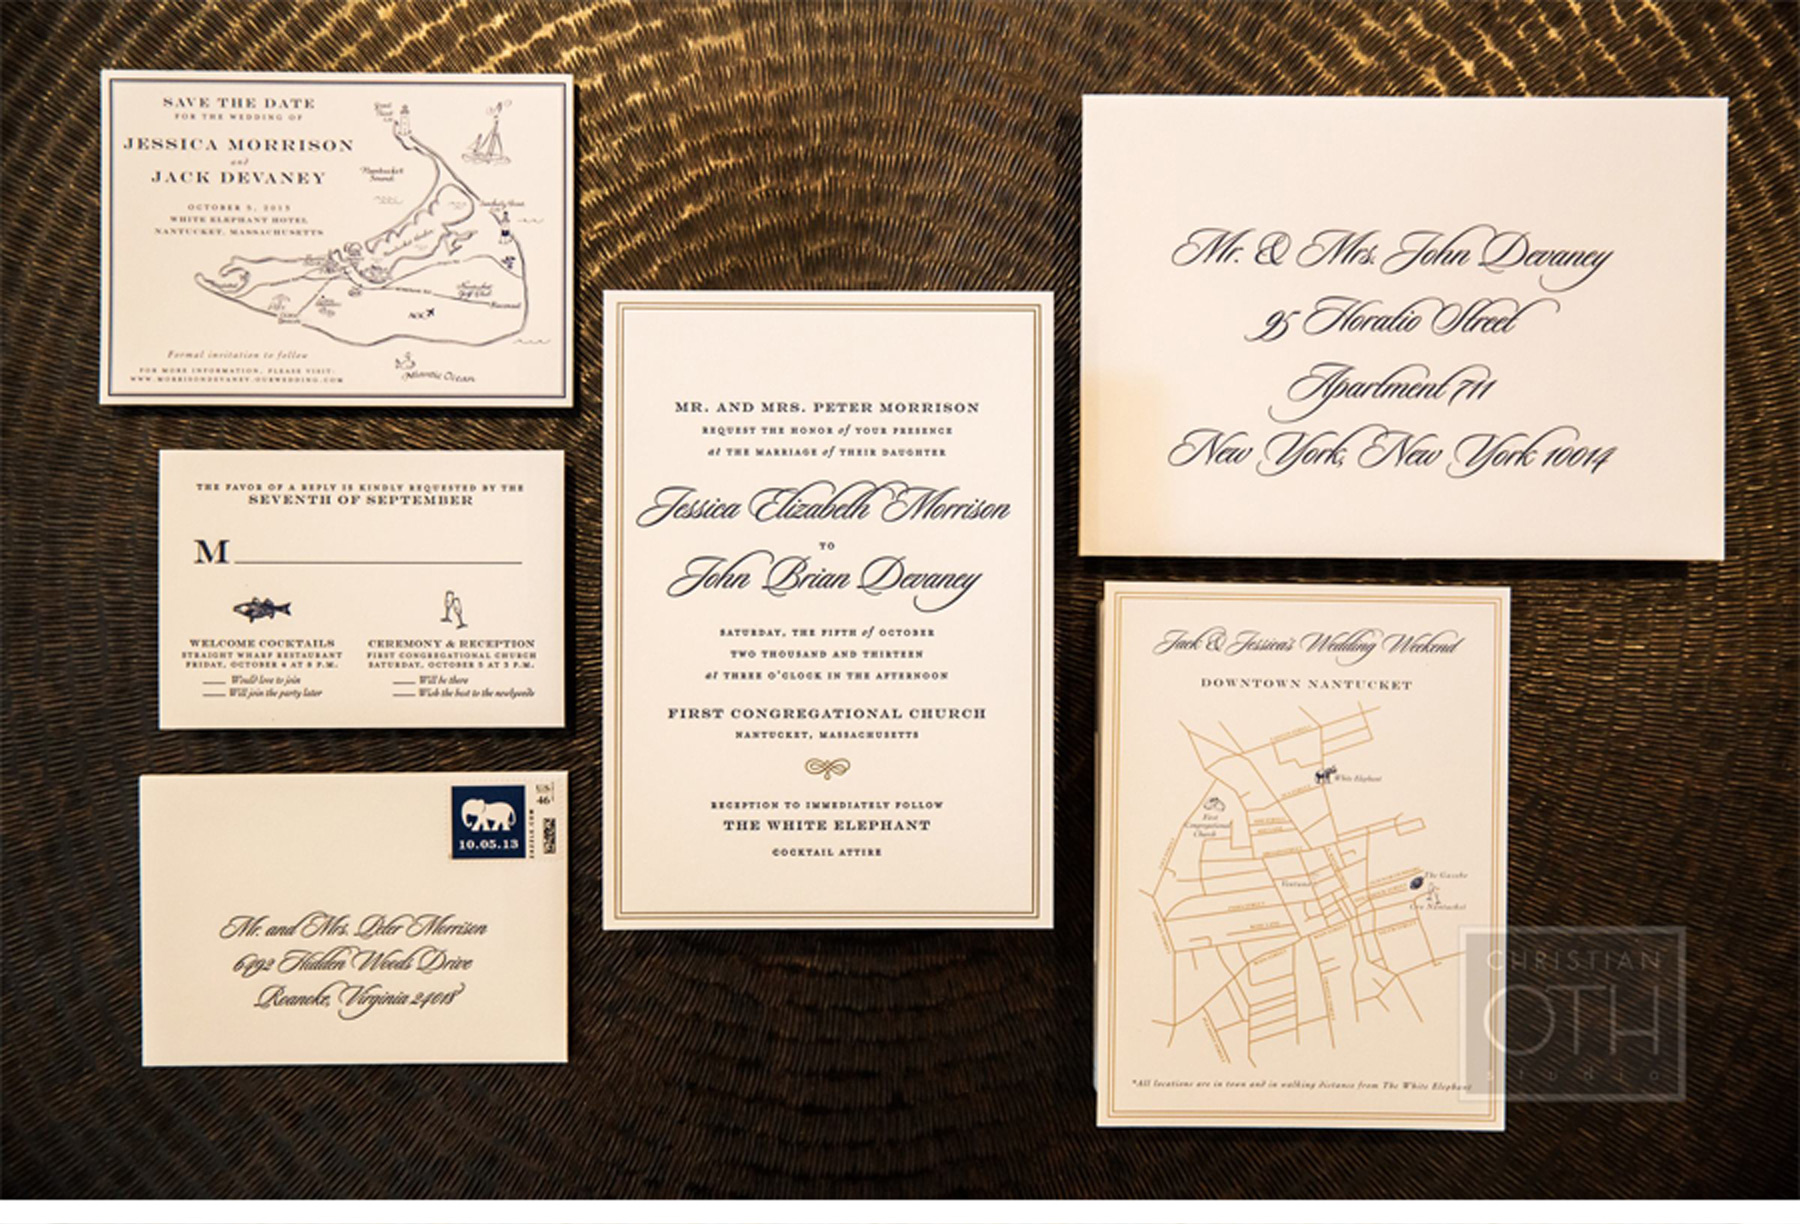 Our Muse - Navy Nantucket Wedding - Be inspired by Jessica & John's navy blue Nantucket wedding - letterpress, invitation, welcome note, save the date, offset, flat, printing, welcome bag, cape cod, nantucket, bridesmaid dress, jimmy choo, bean bag, groomsmen, getting ready, new england, wedding, massachusetts, navy blue